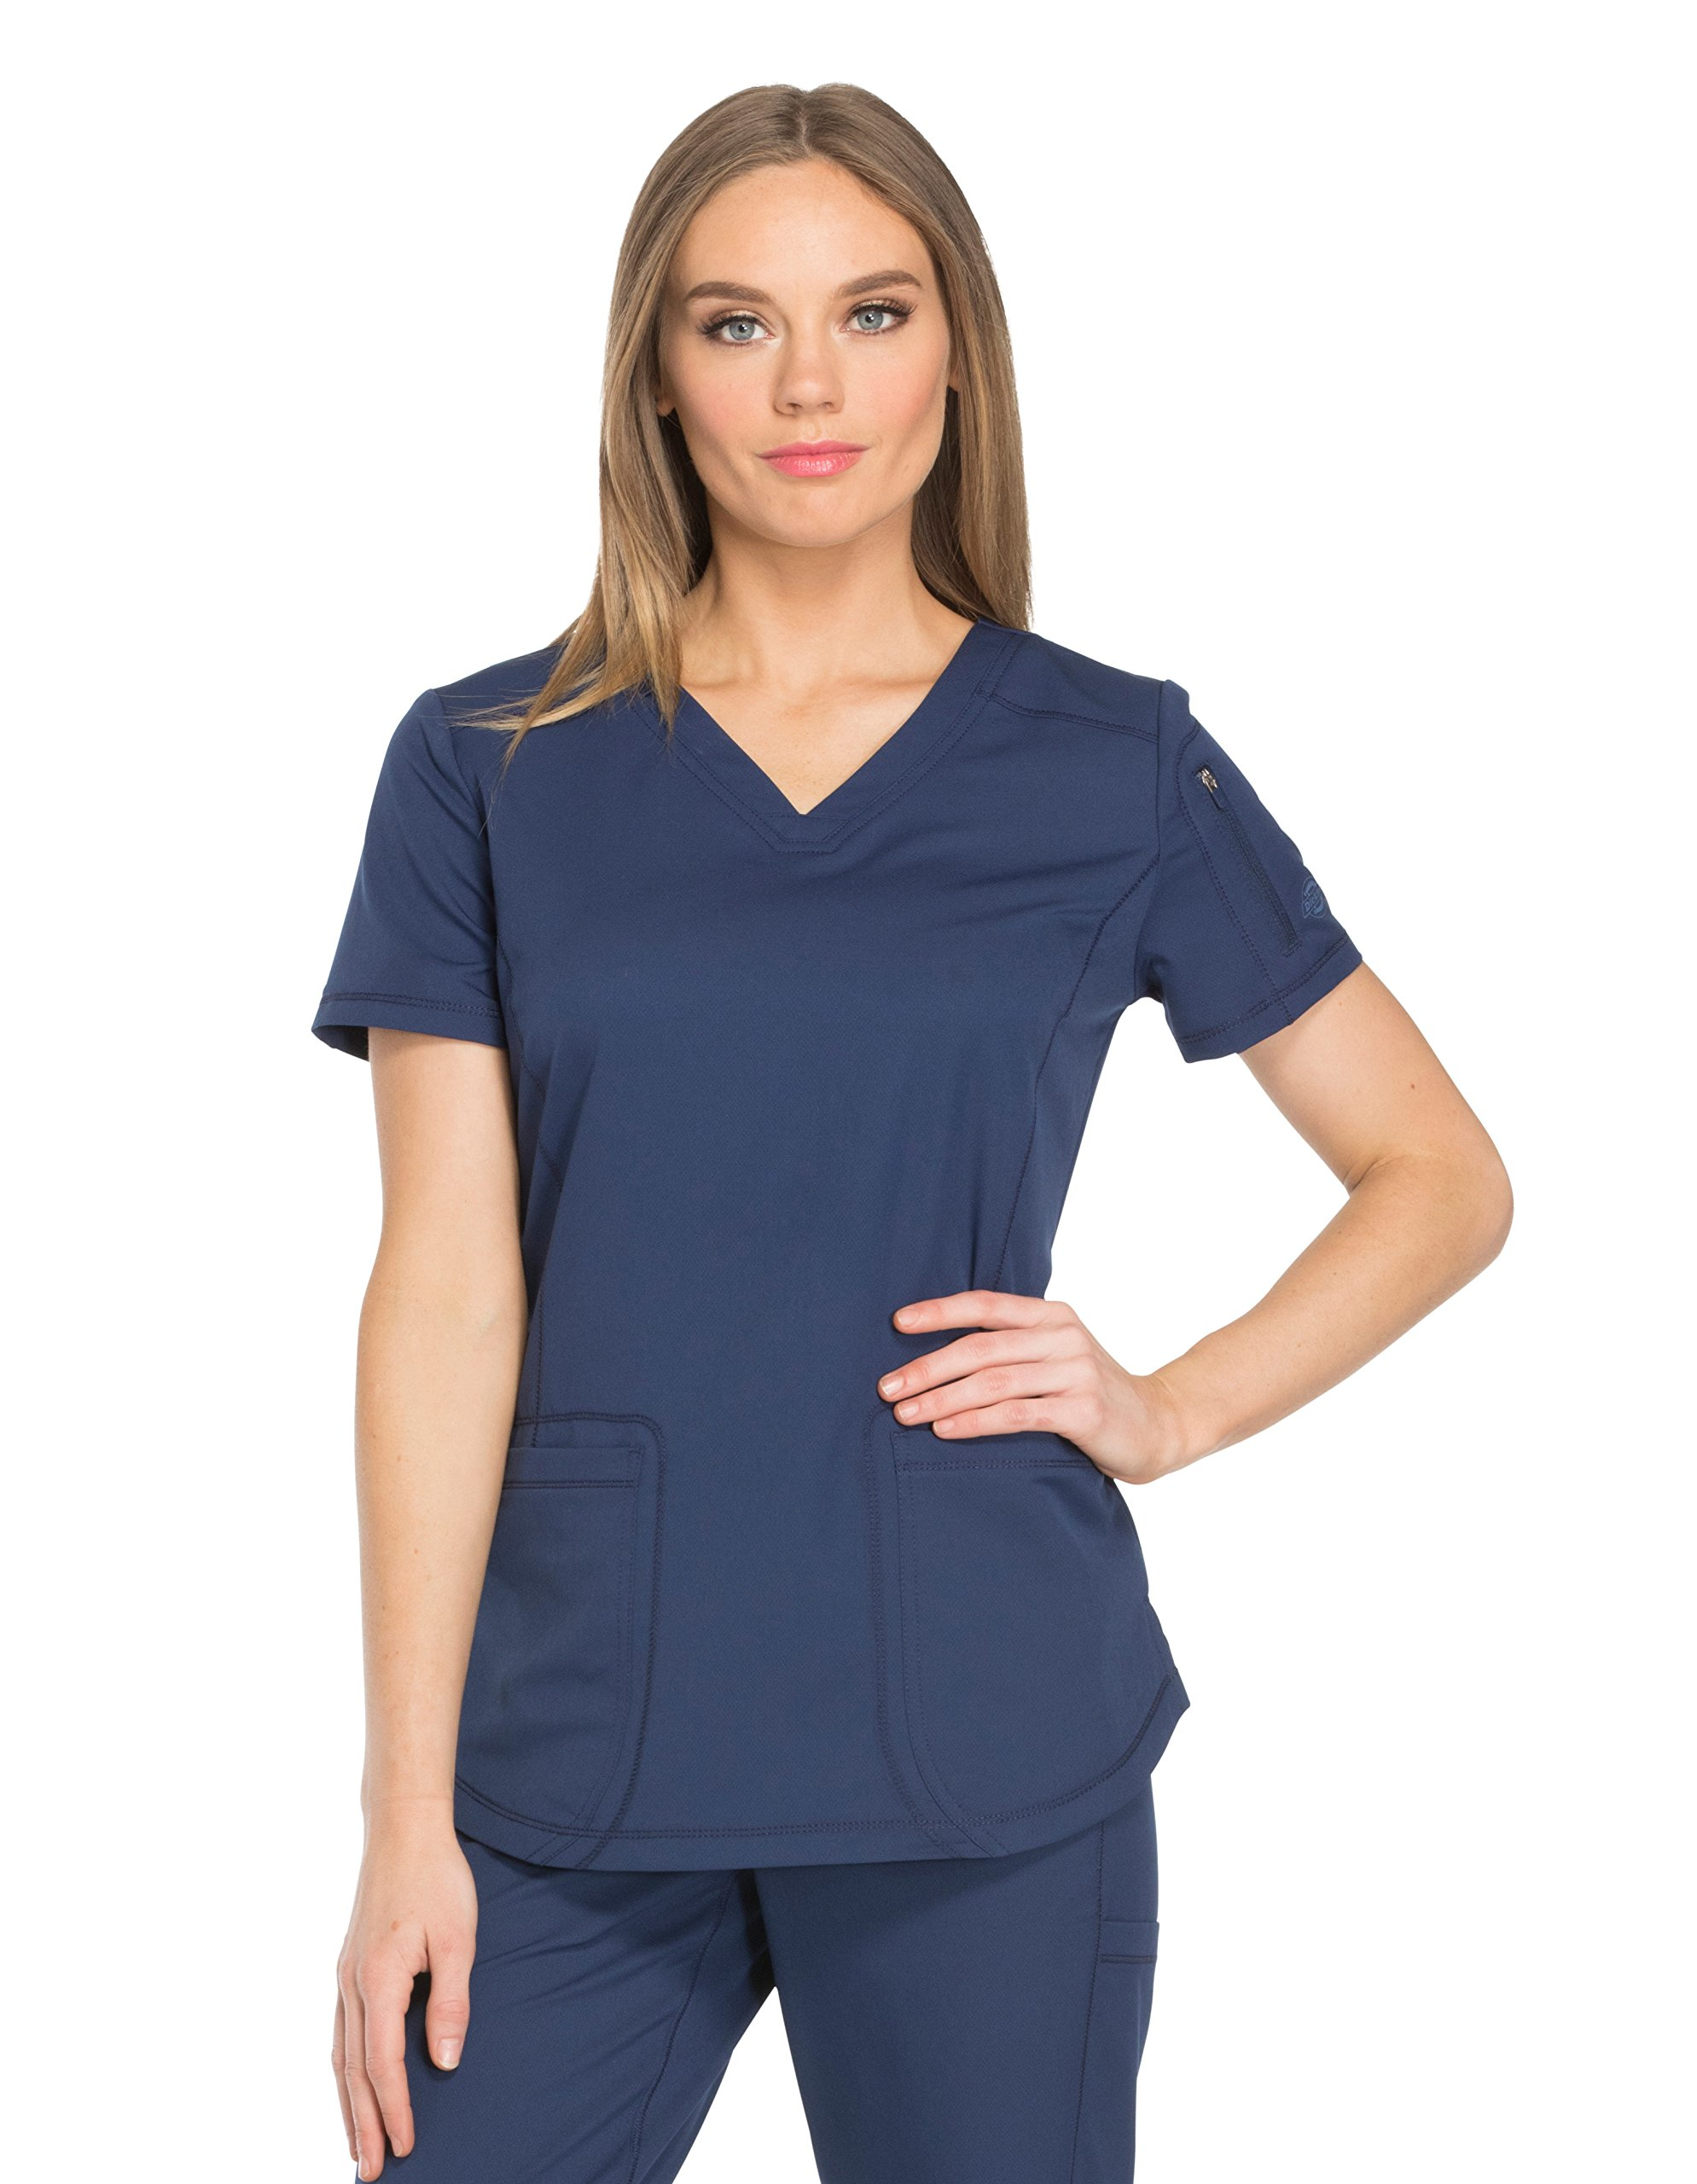 Dynamix Women's DK730 V-Neck Top by Dickies Medical- Navy- L